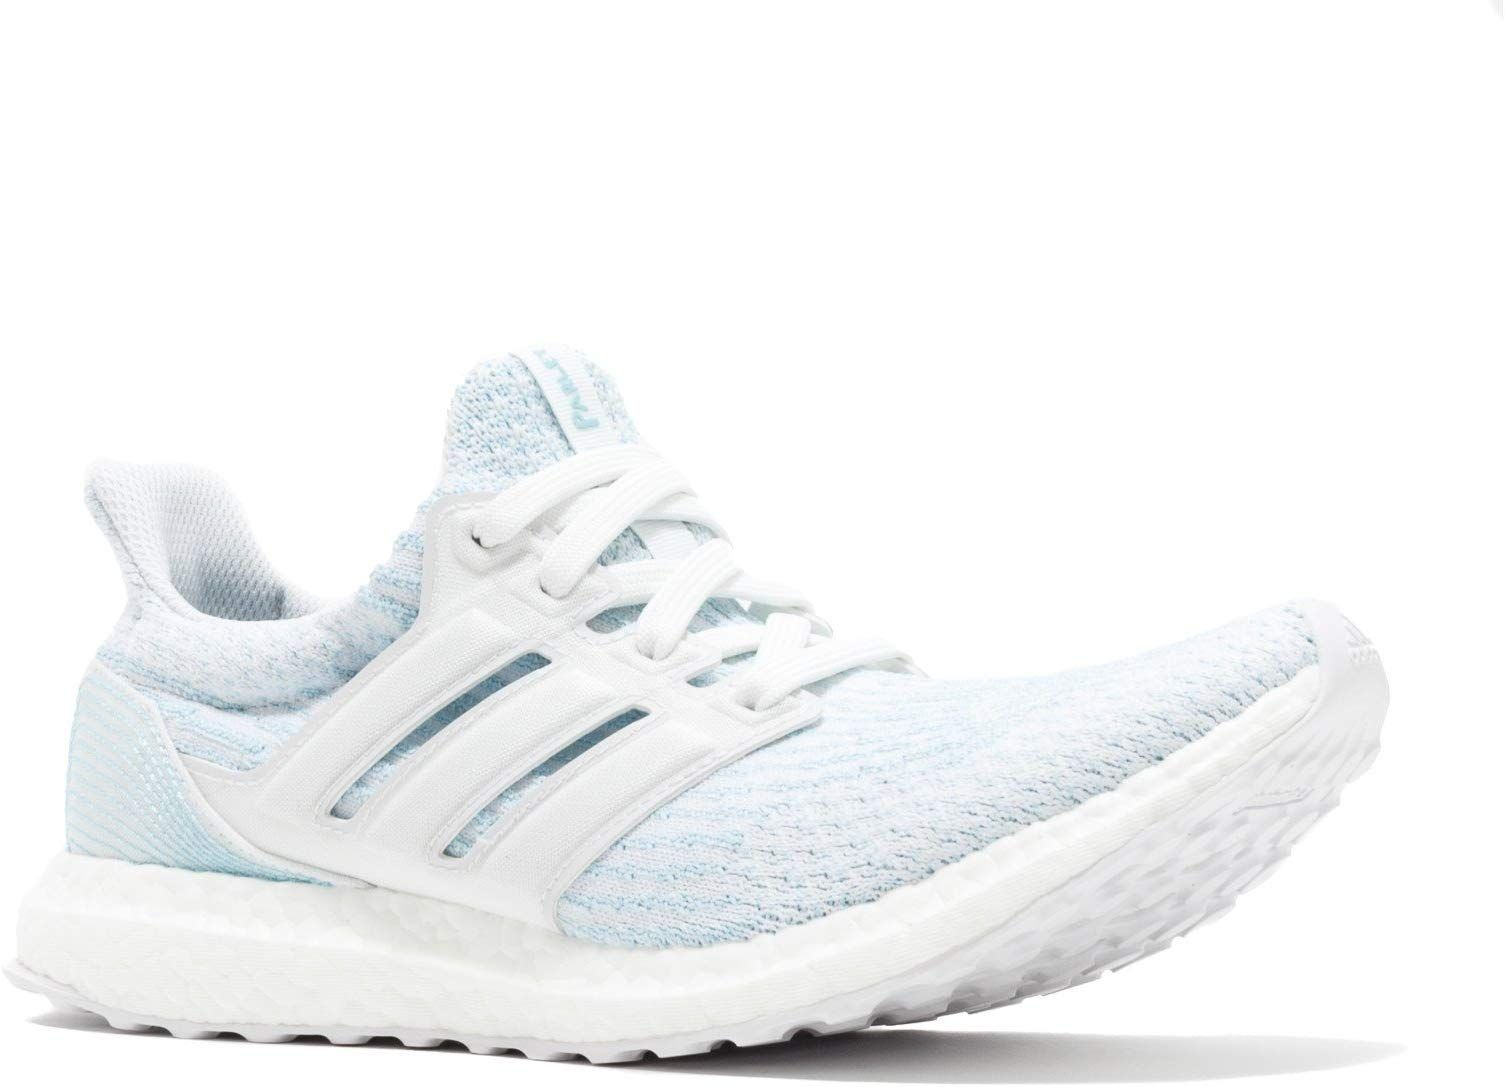 ec17bc8d52e60 adidas Ultraboost 3.0 Parley Shoe Men's Running #Amazon #Fashion ...